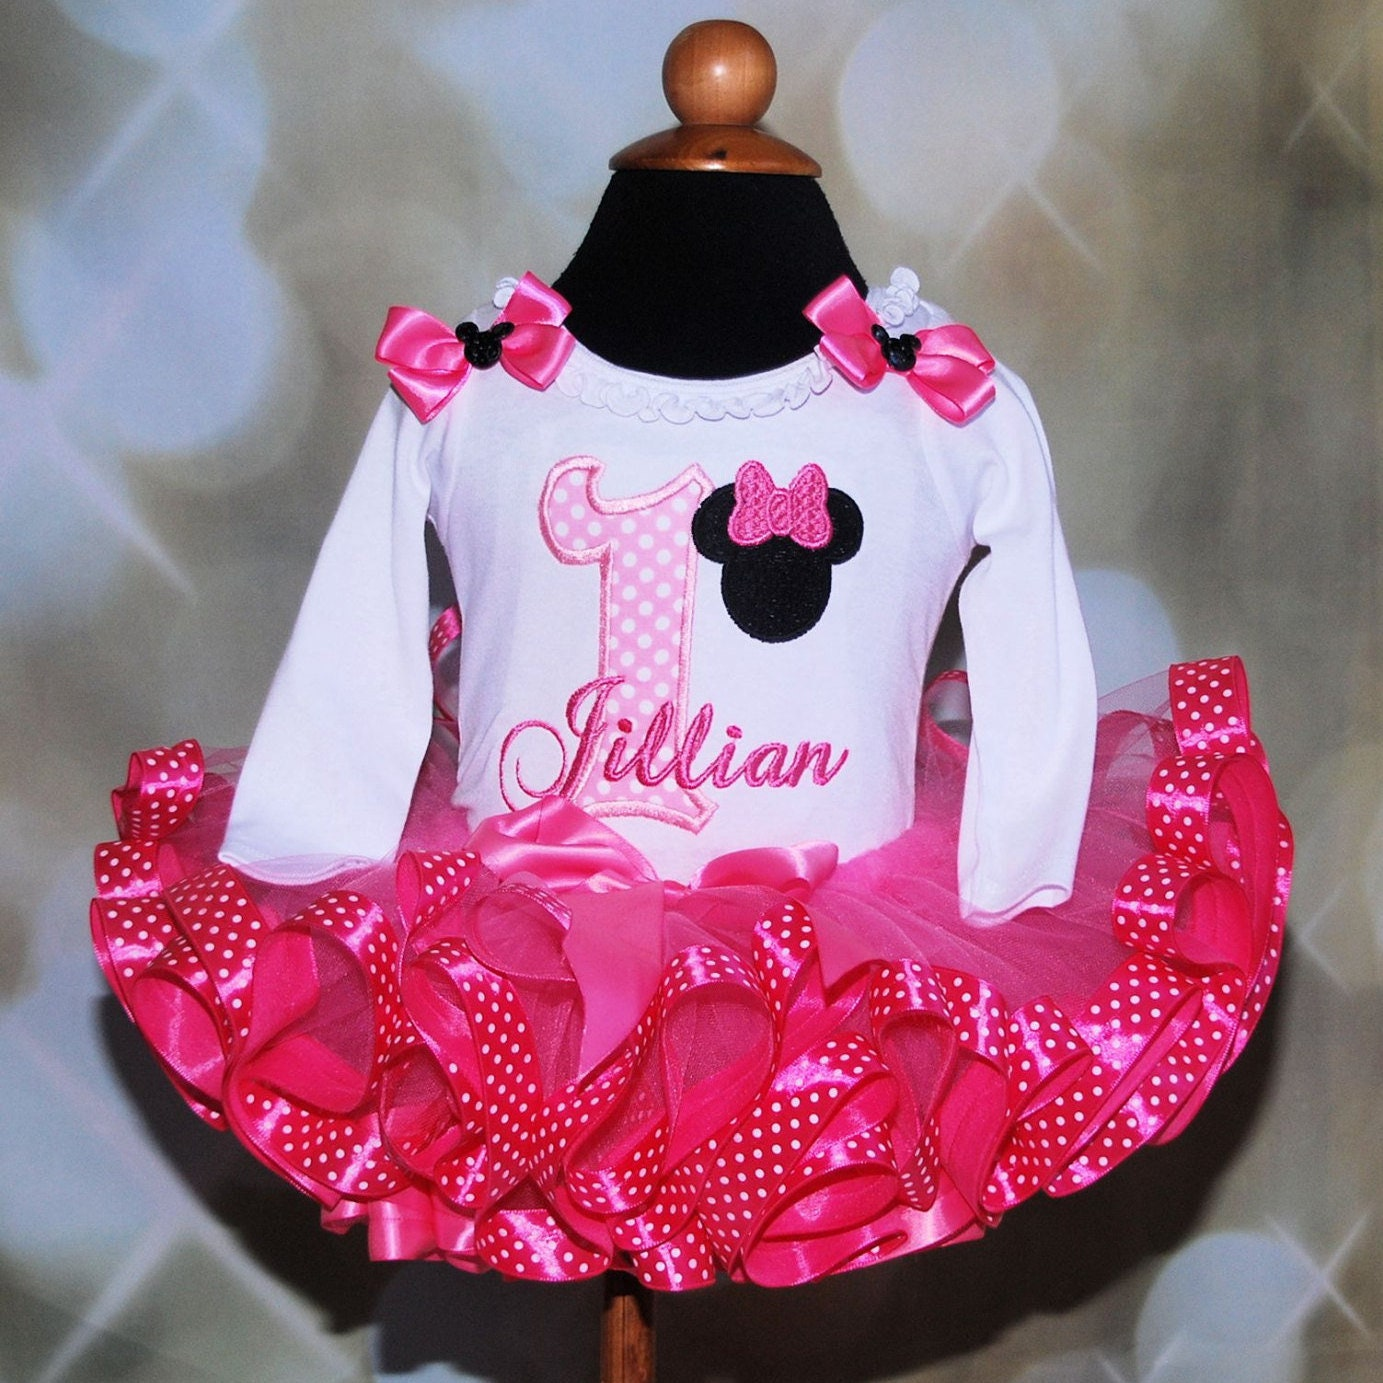 Minnie Mouse first birthday tutu outfit 1st bithday girl outfit  minnie mouse tutu dress 1st birthday cake smash outfit personalized